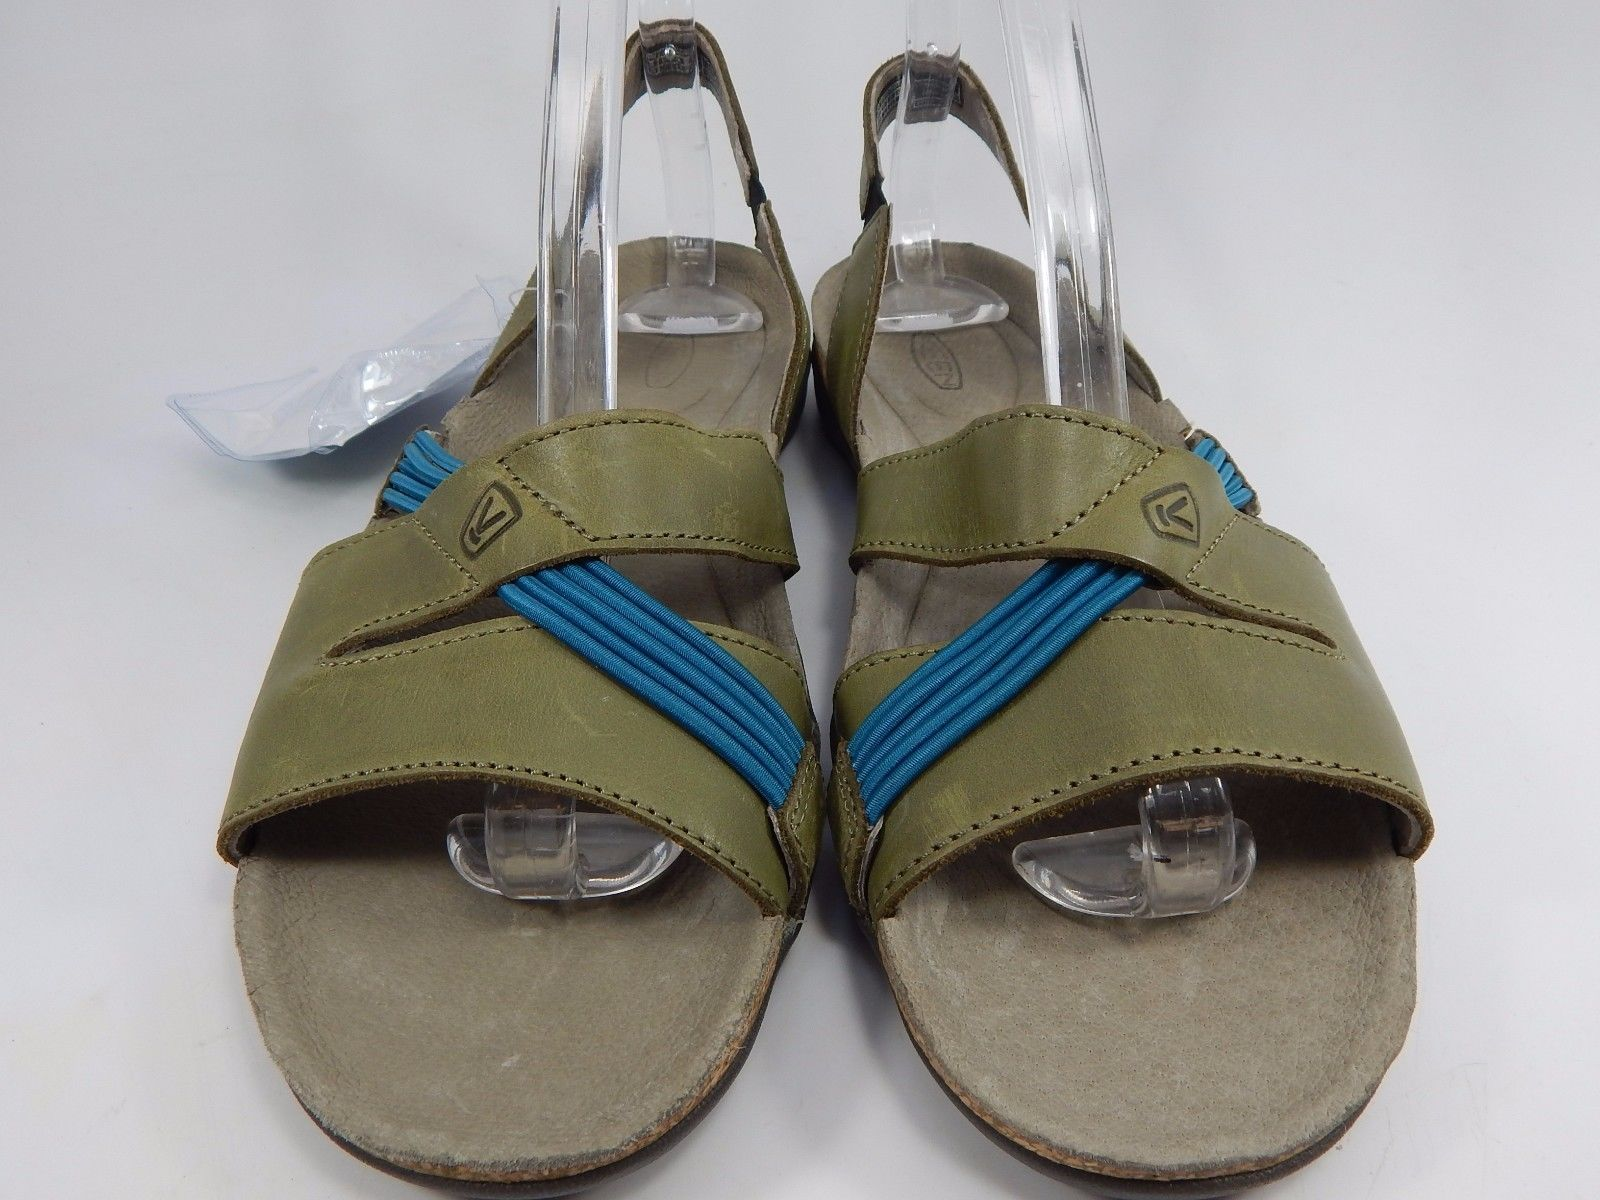 Keen Dauntless Strappy II Women's Sports Sandals Size US 7 M (B) EU 37.5 Olive